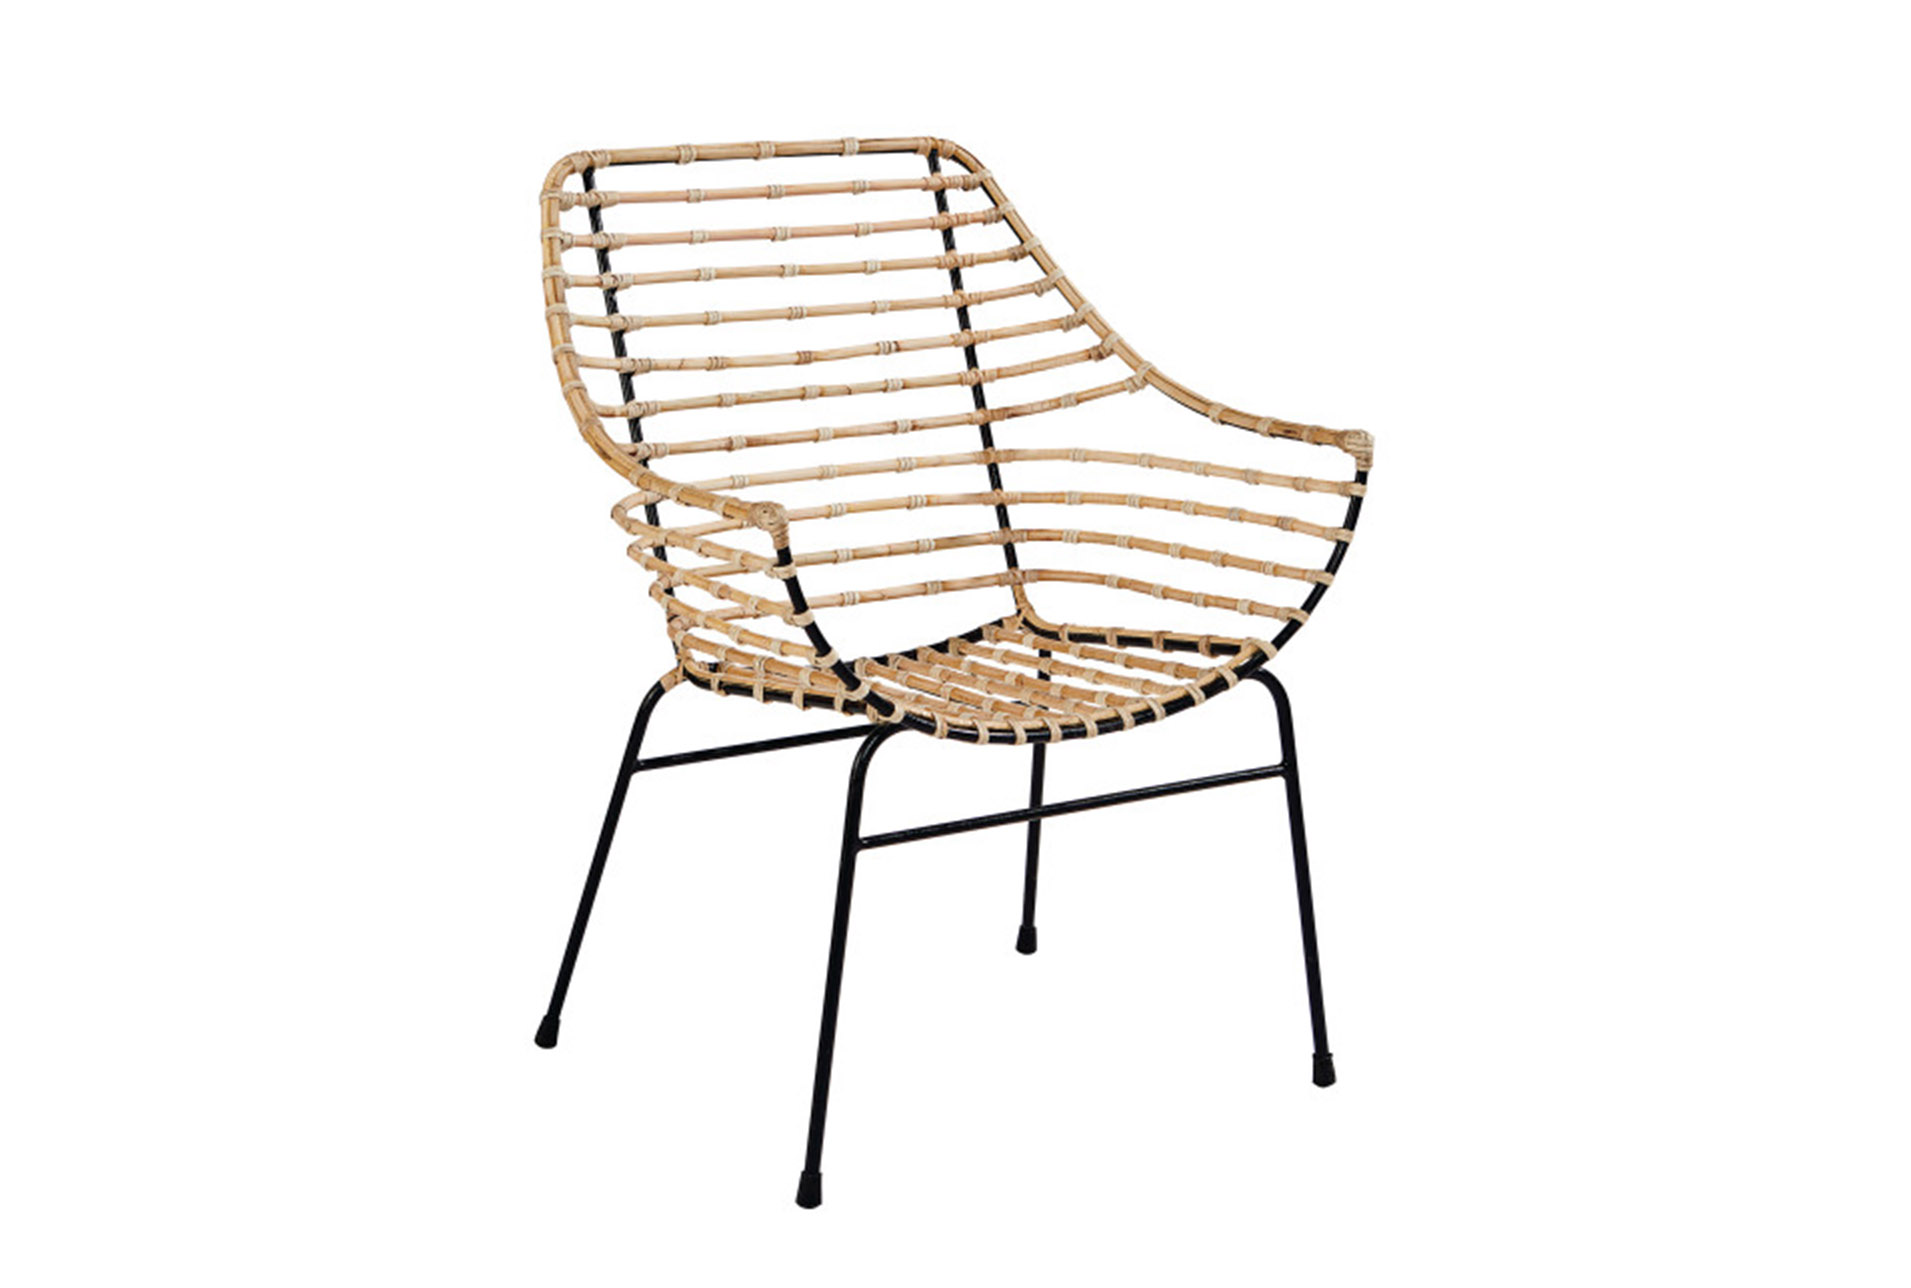 Magnolia Home Entwine Rattan Arm Chair By Joanna Gaines (Qty: 1) Has Been  Successfully Added To Your Cart.